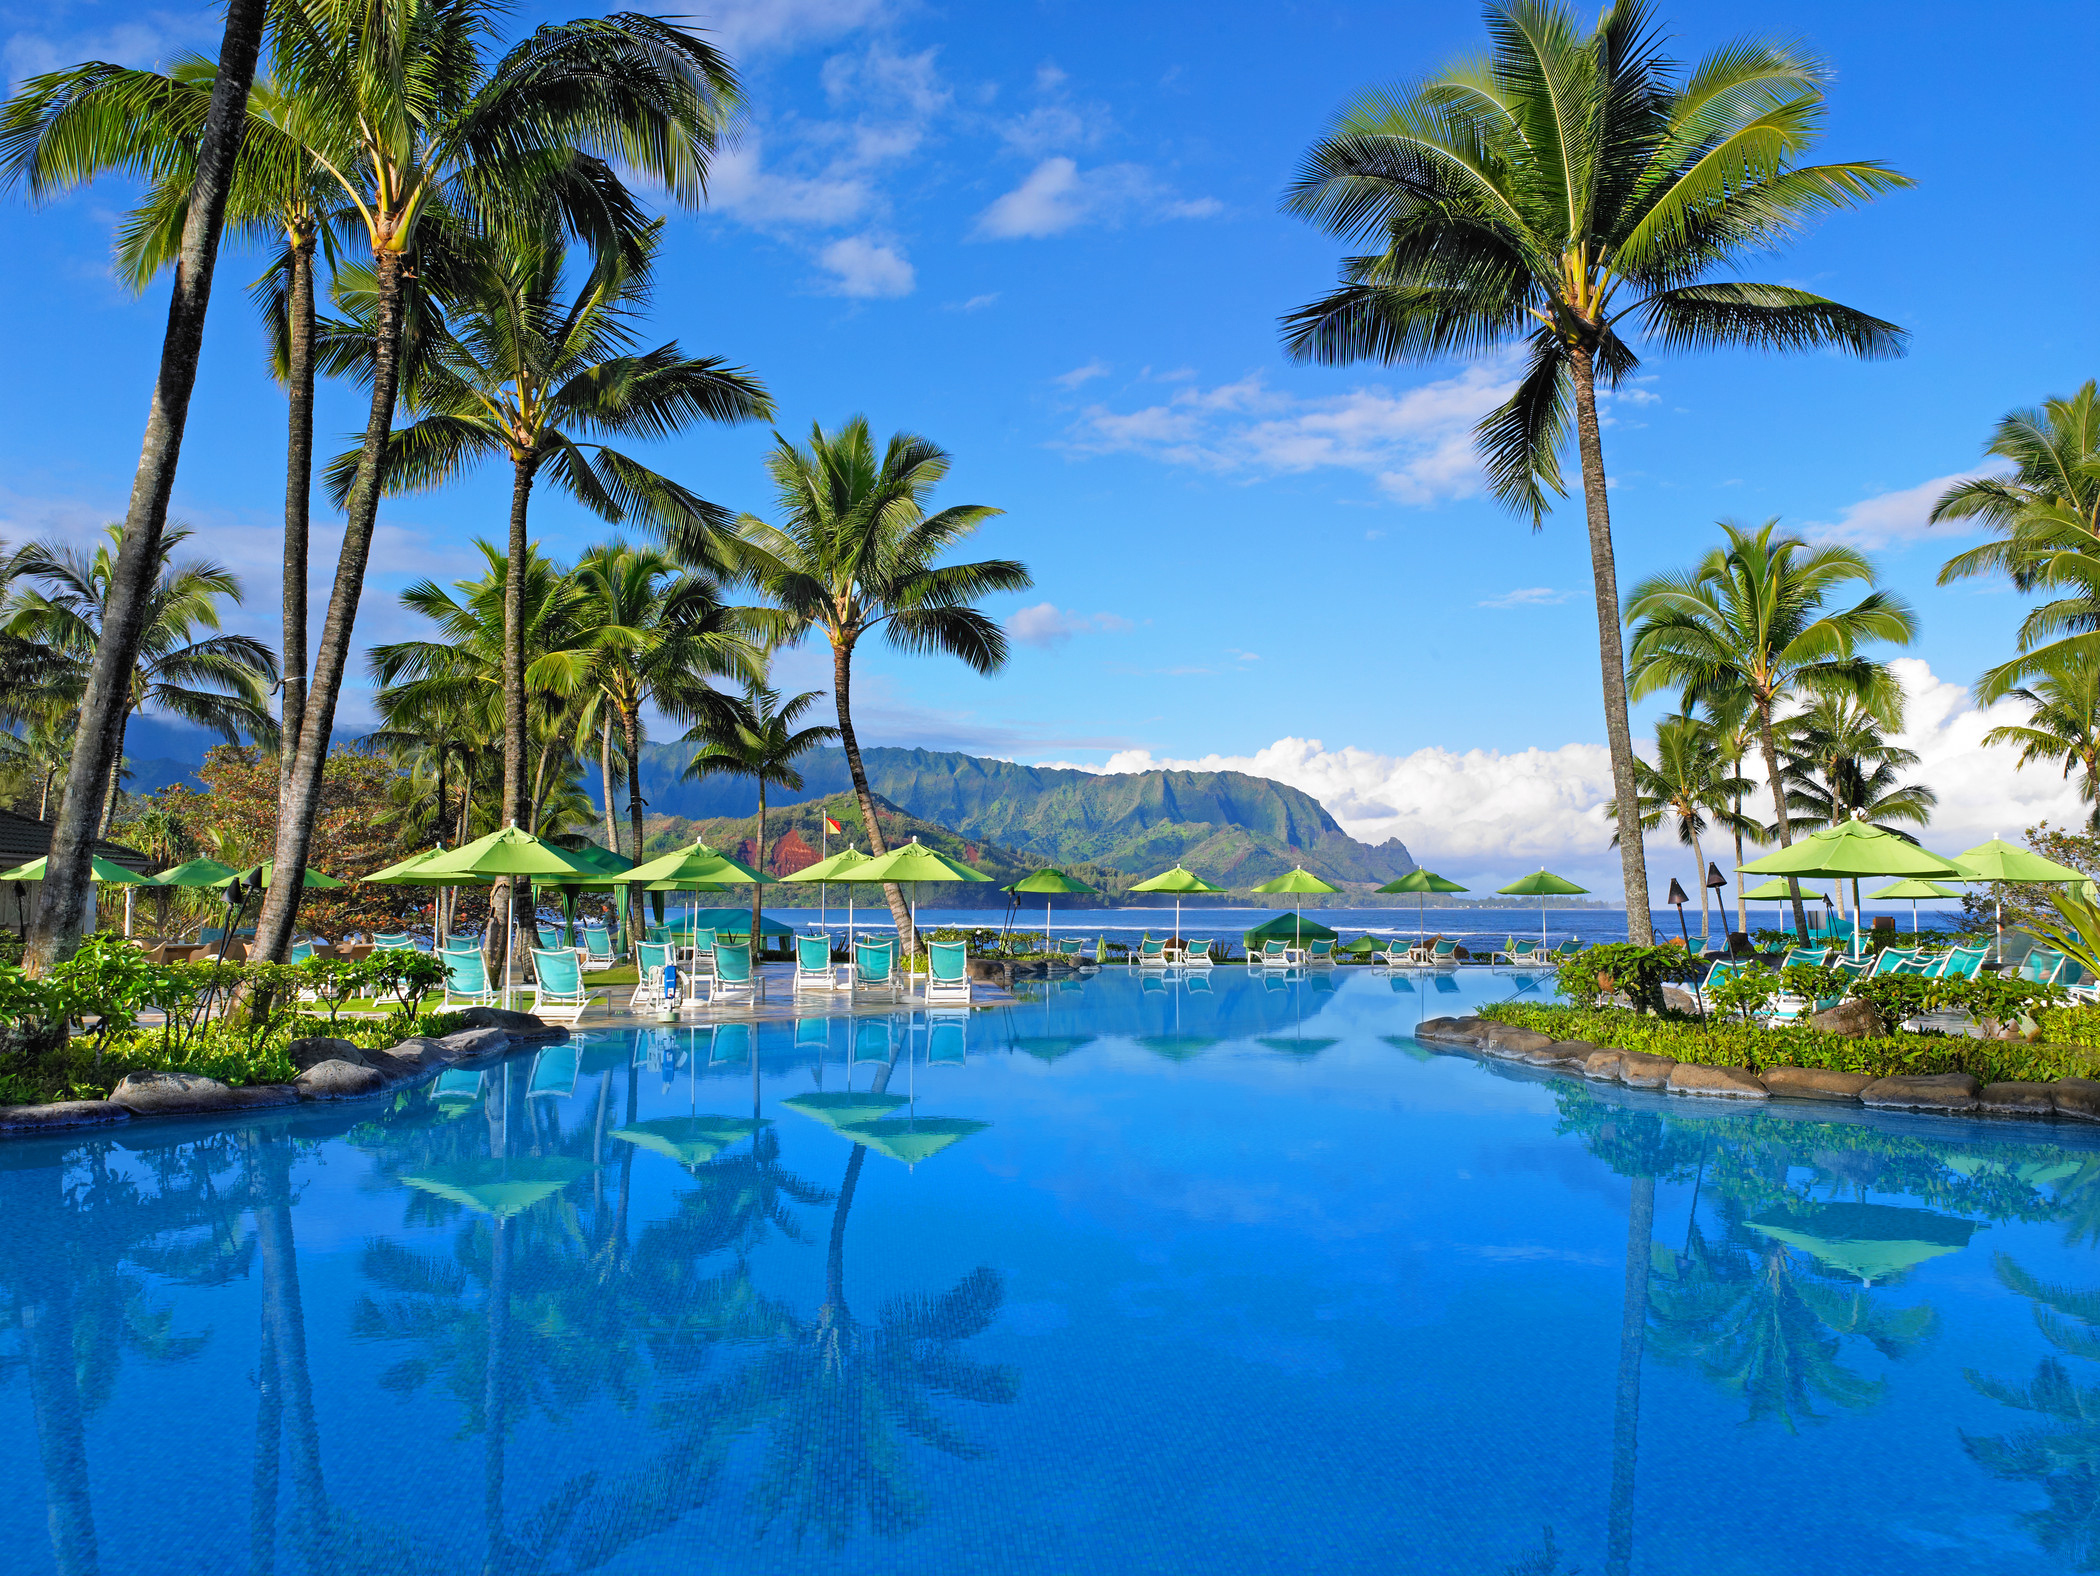 Kauai: Where to Stay